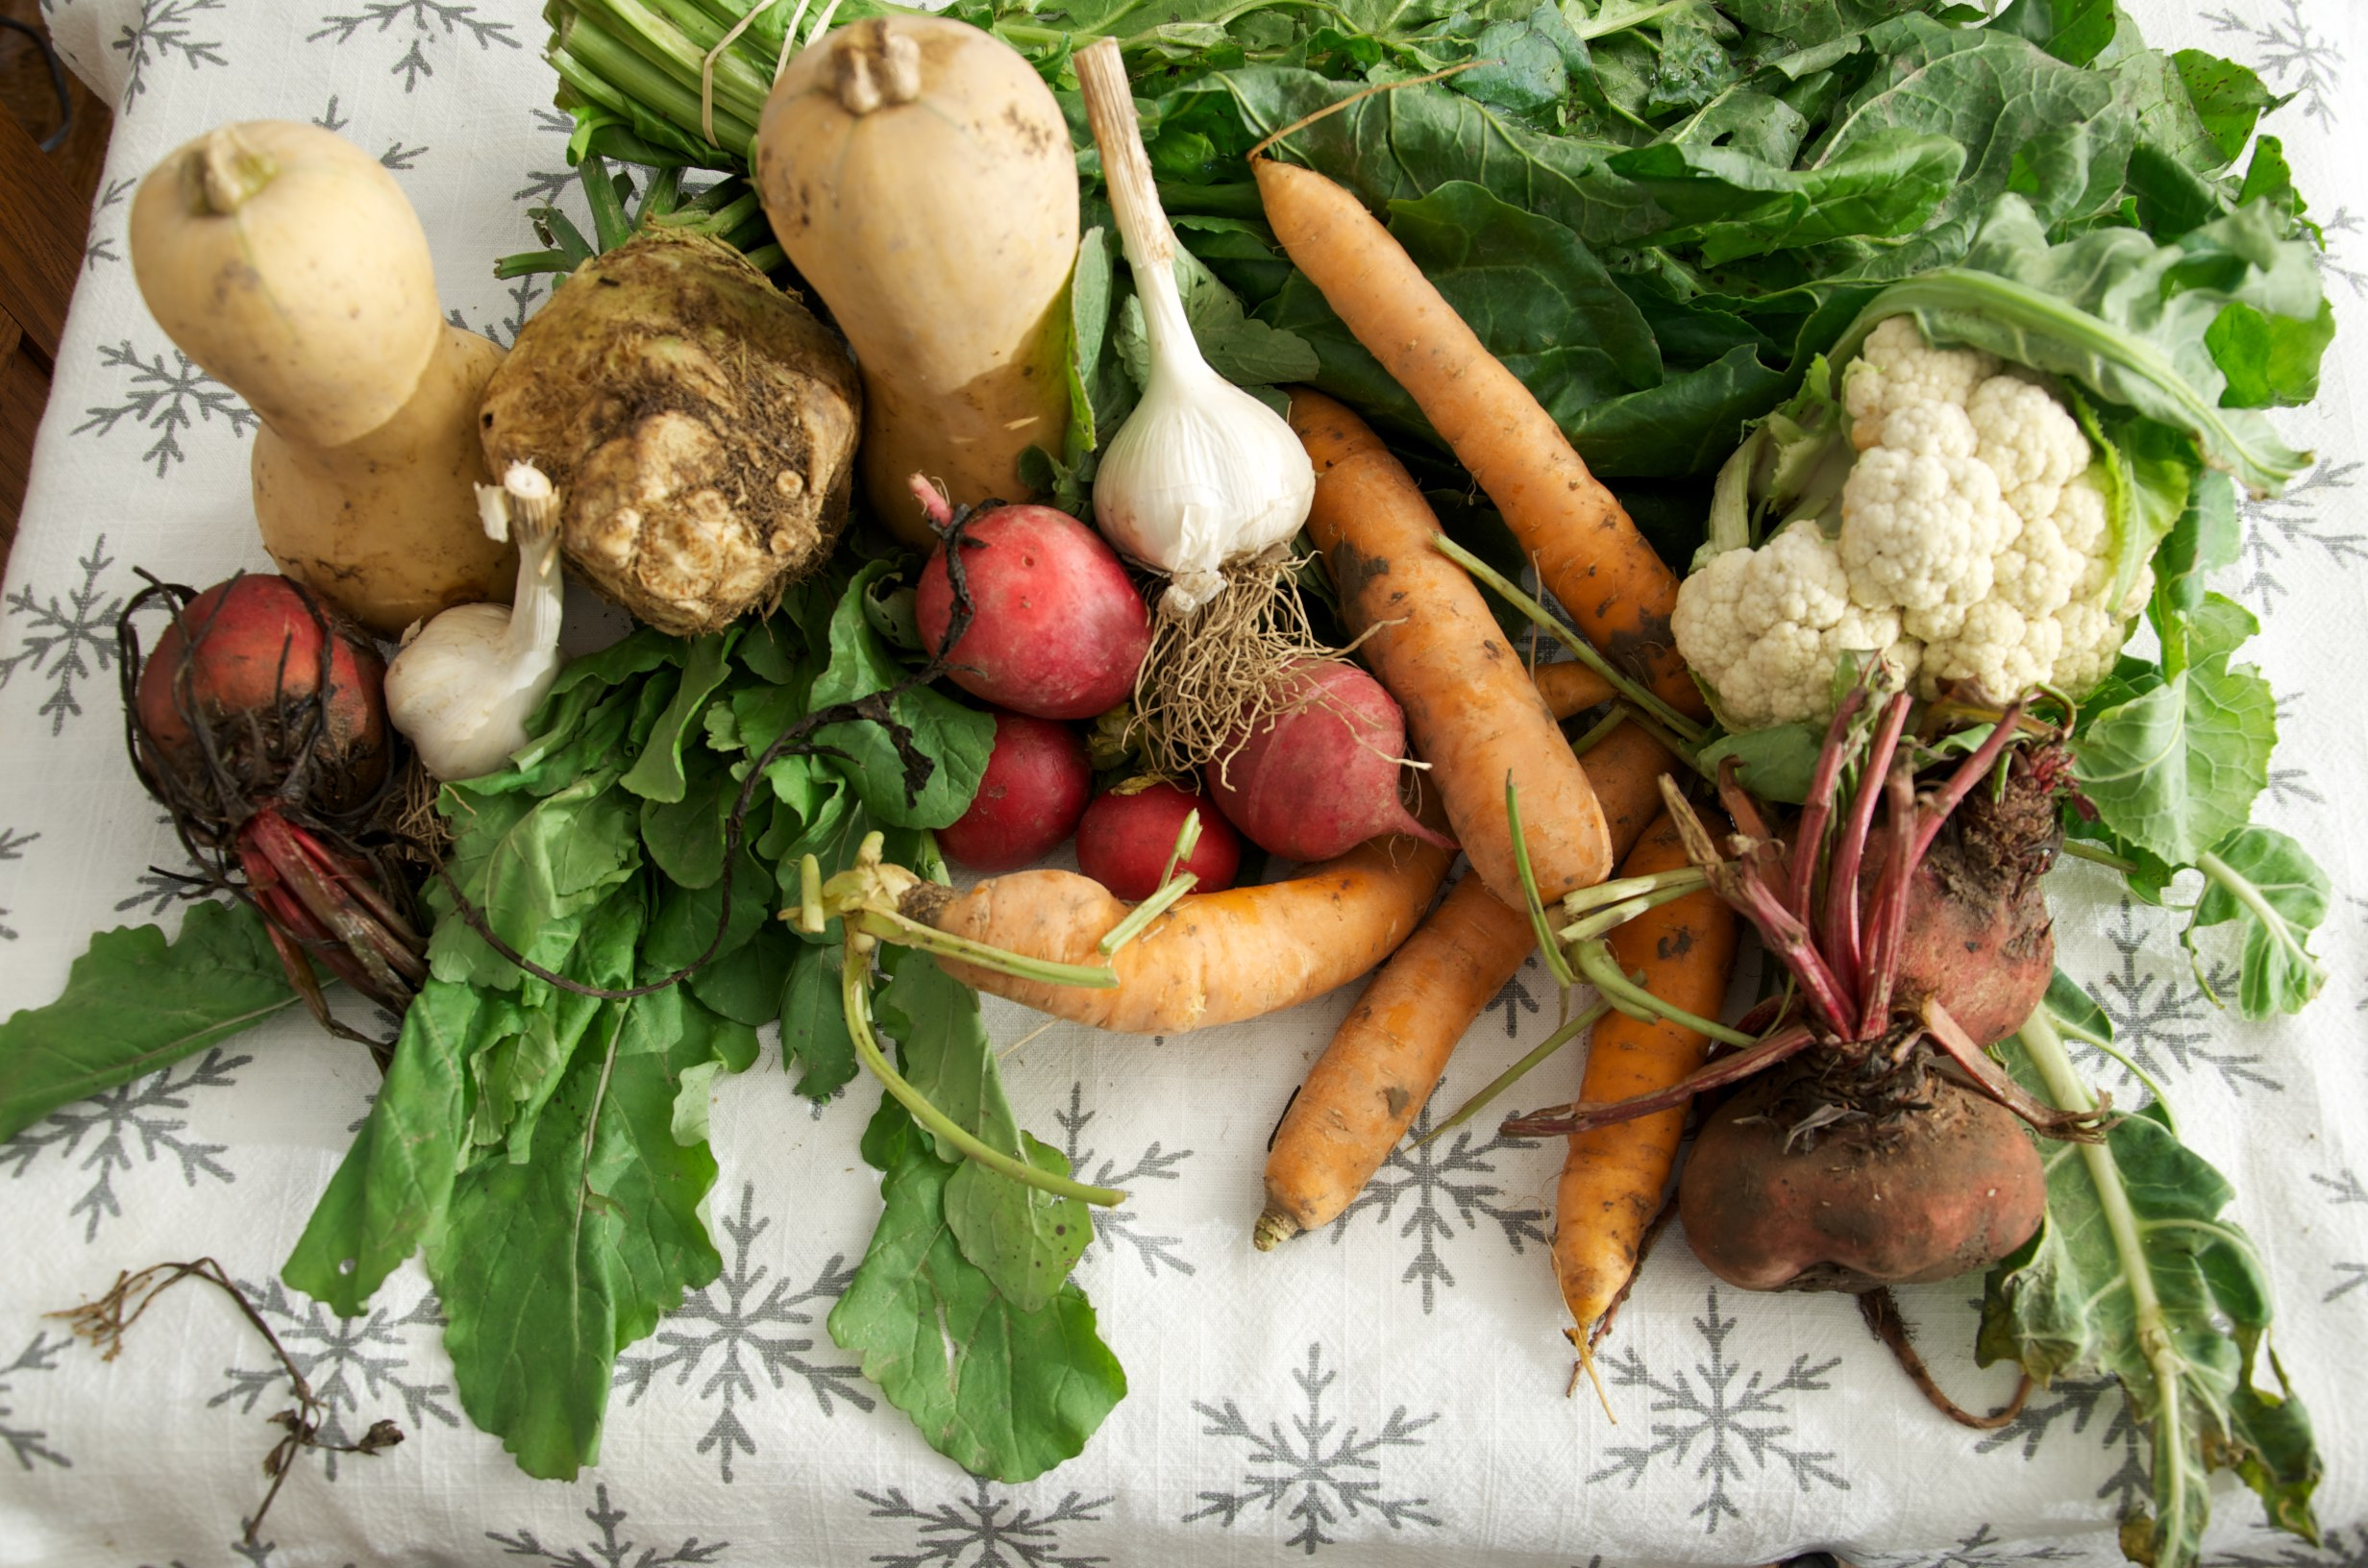 There are many vegetables to plants in fall to get one last harvest before winter.